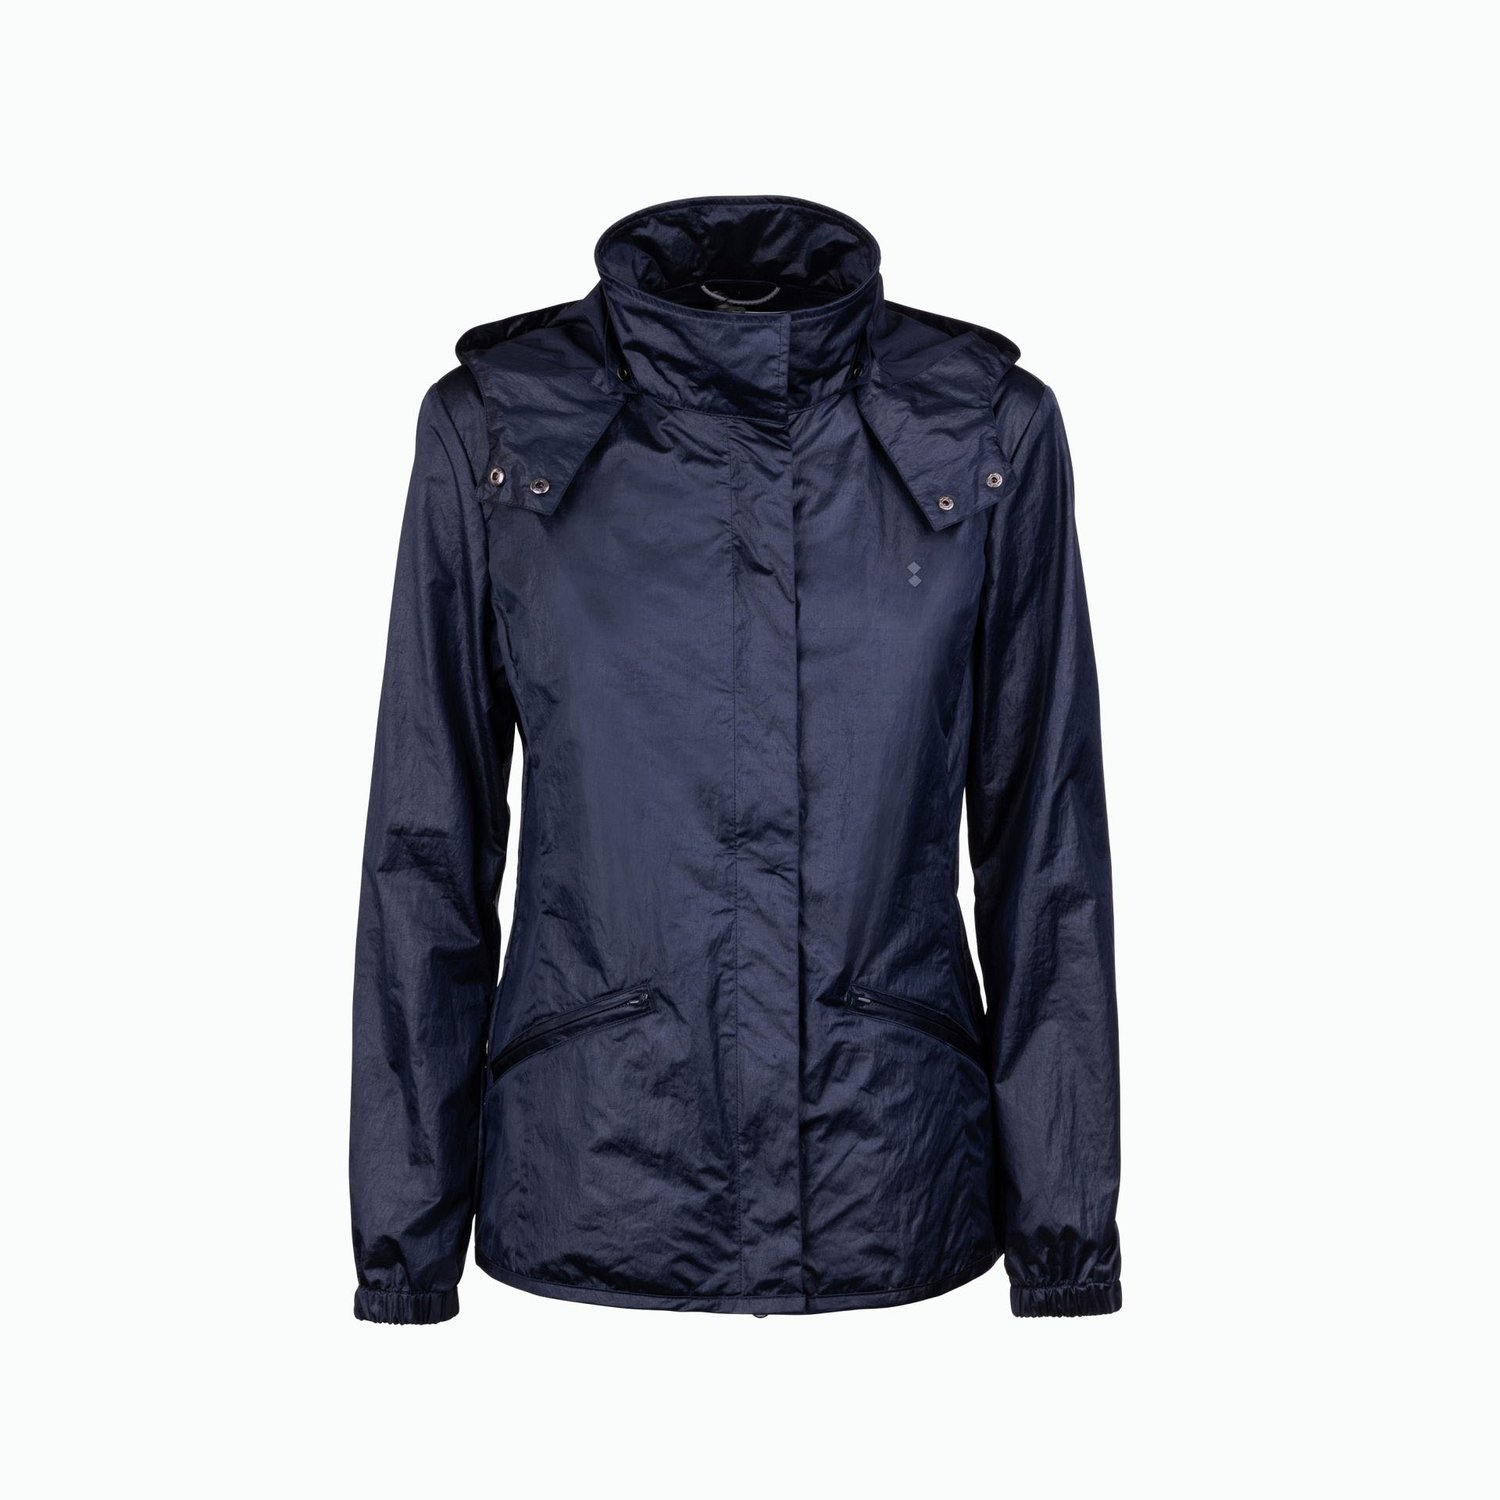 Oar Jacket - Navy